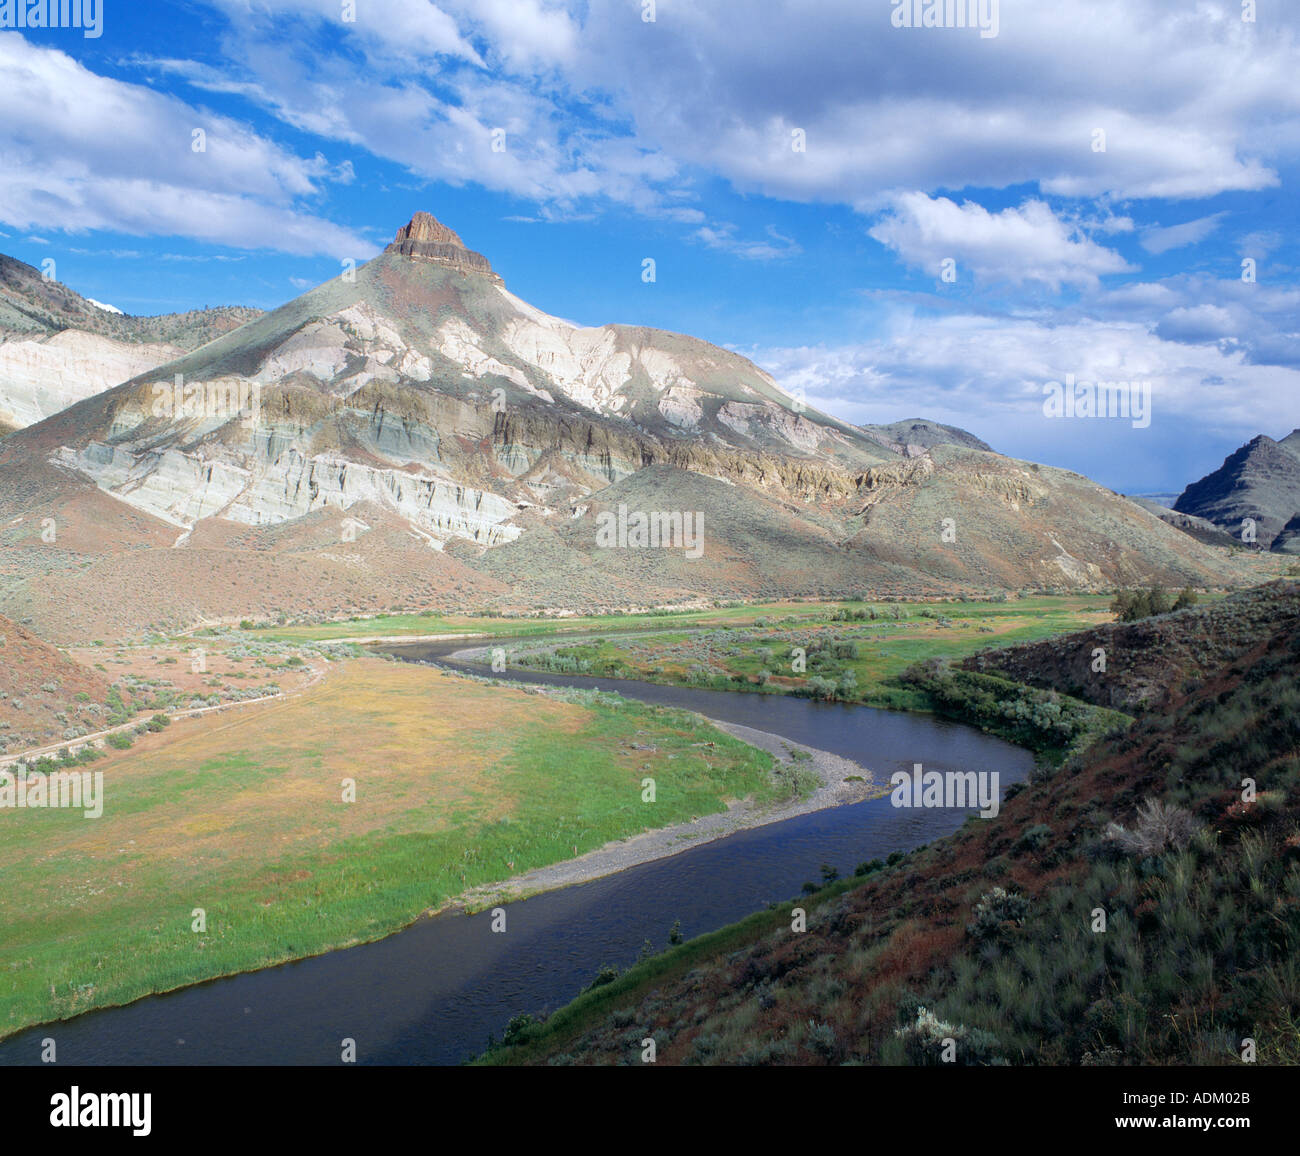 River in the John Day Fossil Beds - Stock Image